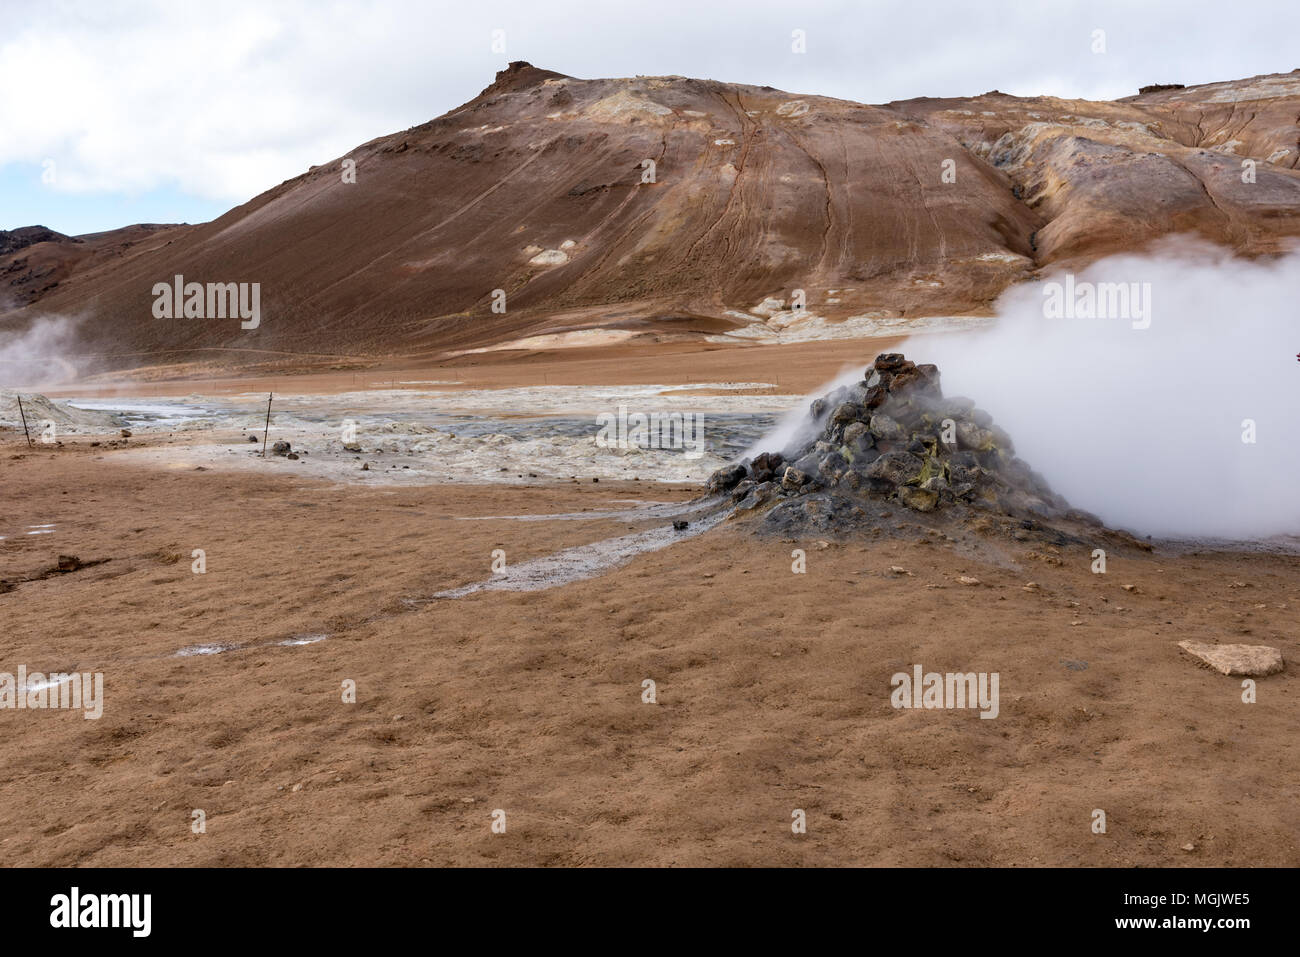 Hverir, steam vent and the hills behind - Stock Image